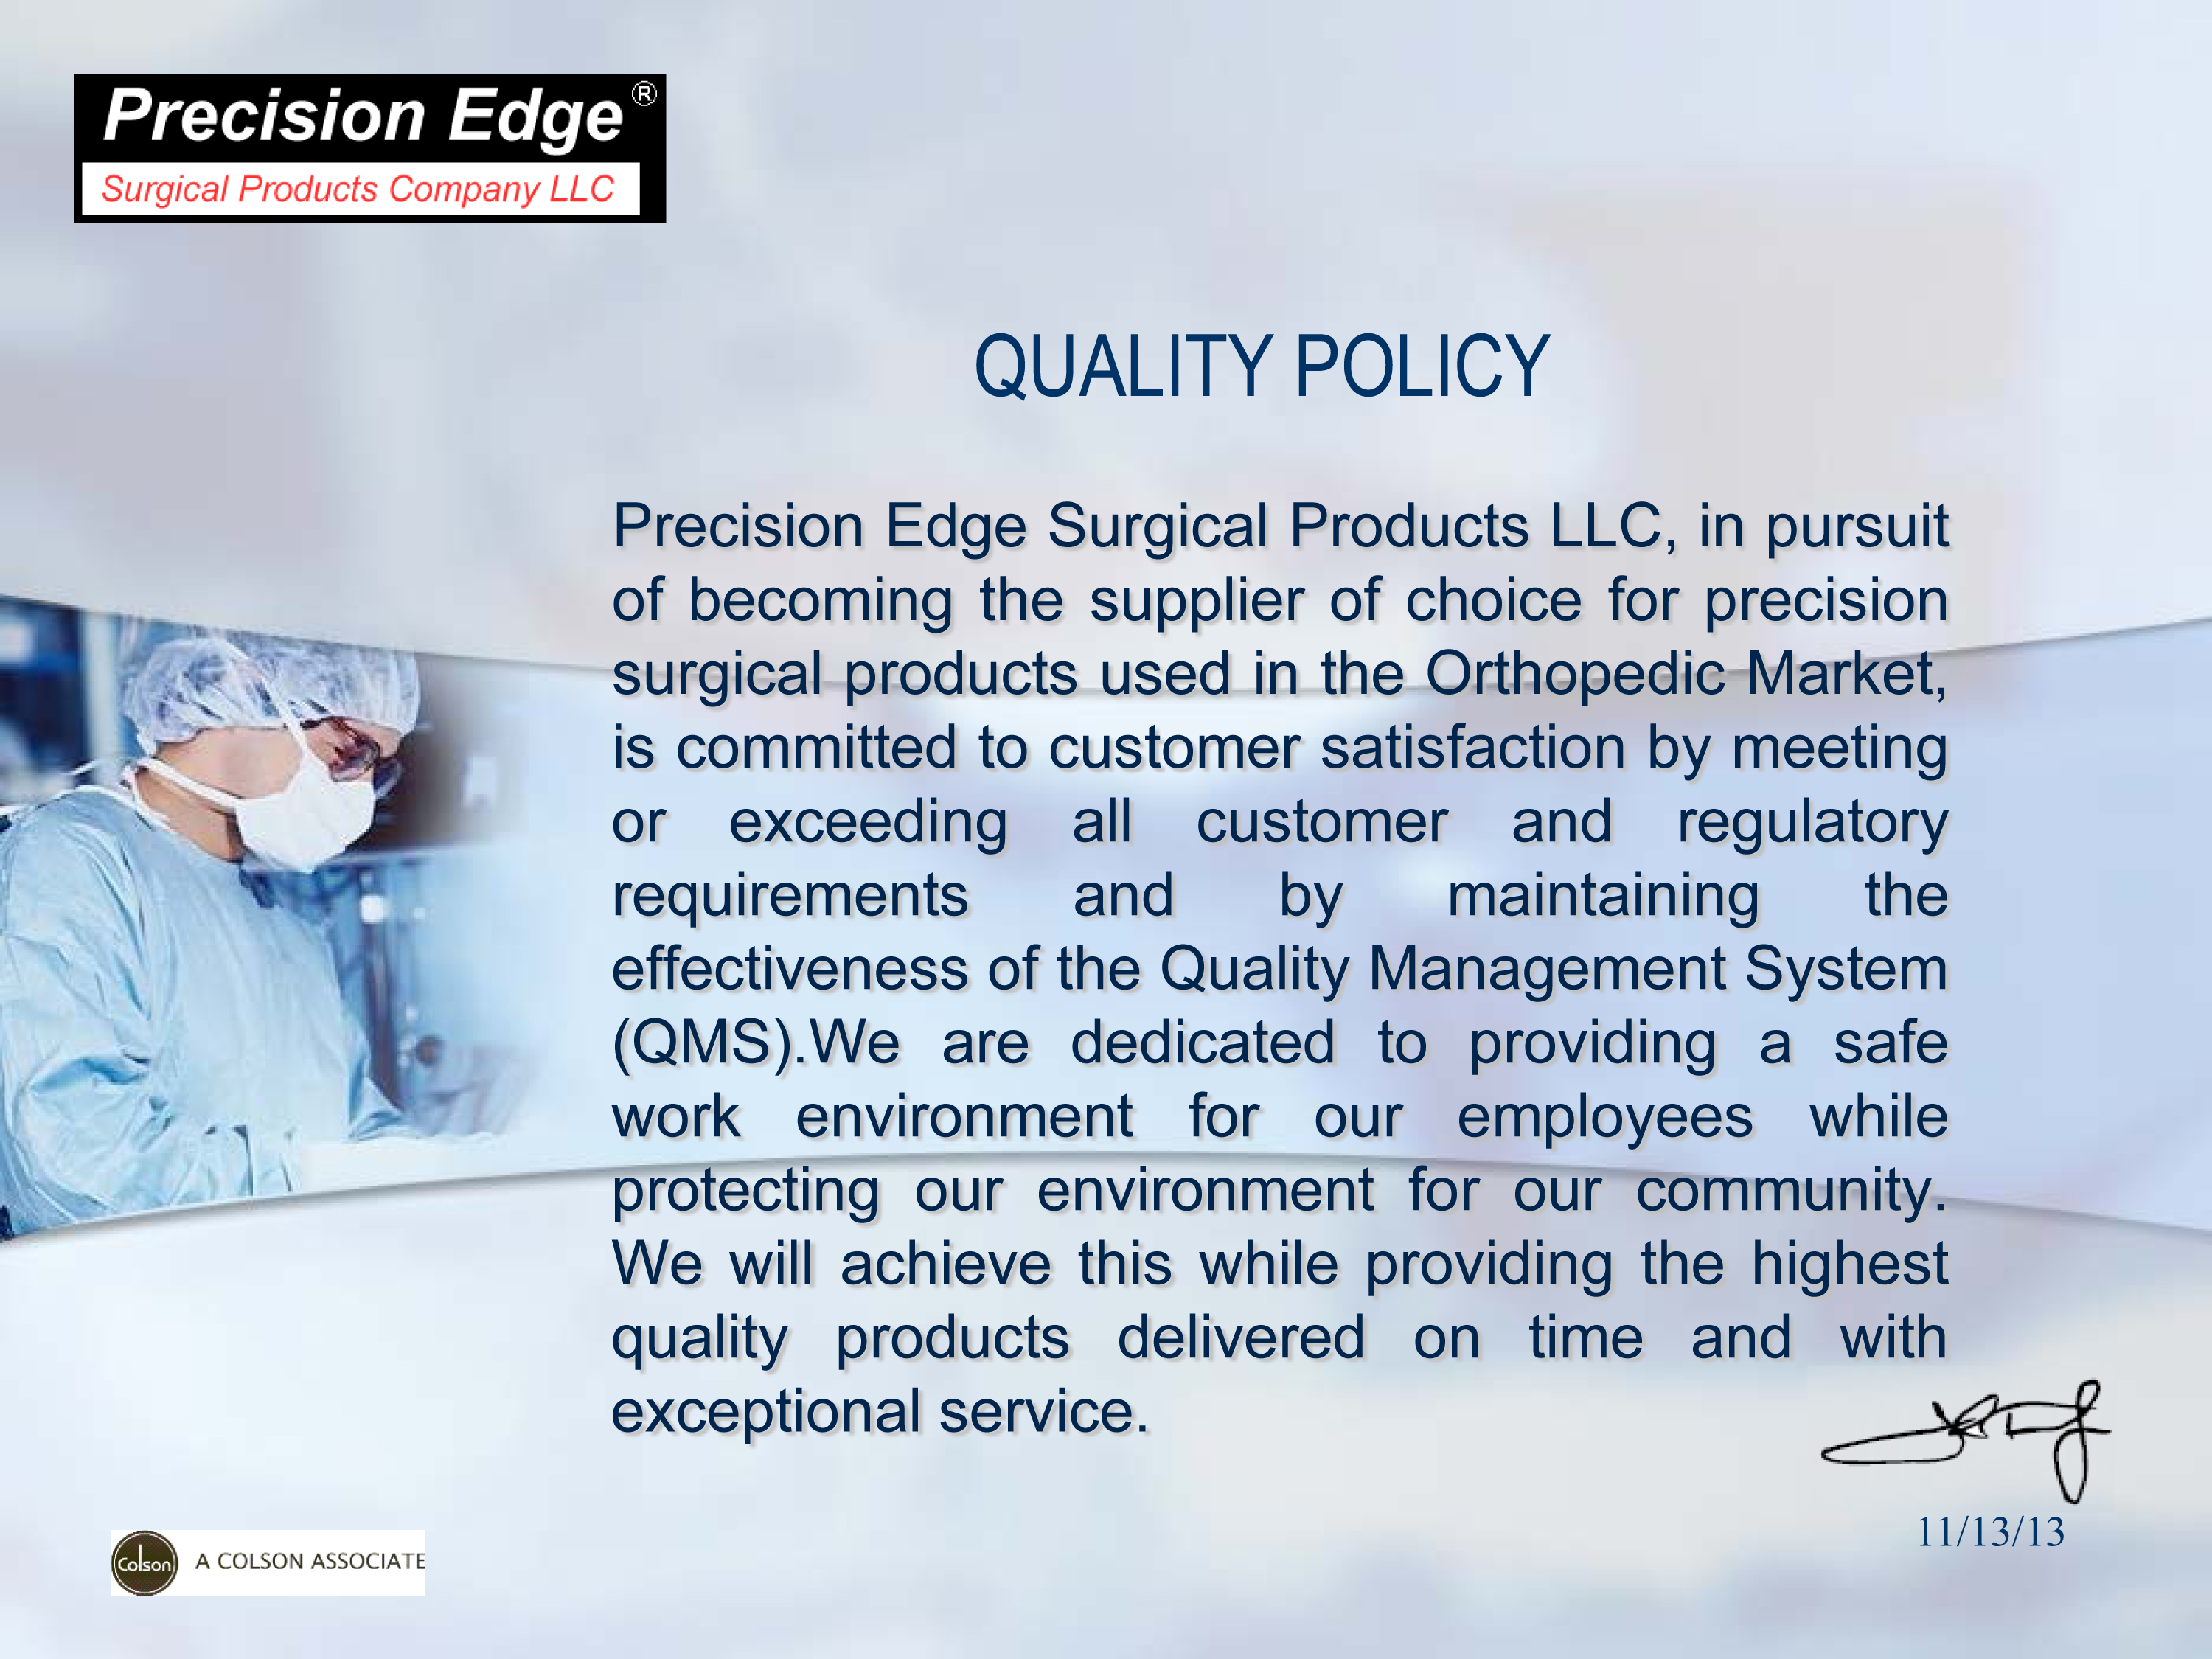 Quality Policy Orthopedic Supplier of Choice